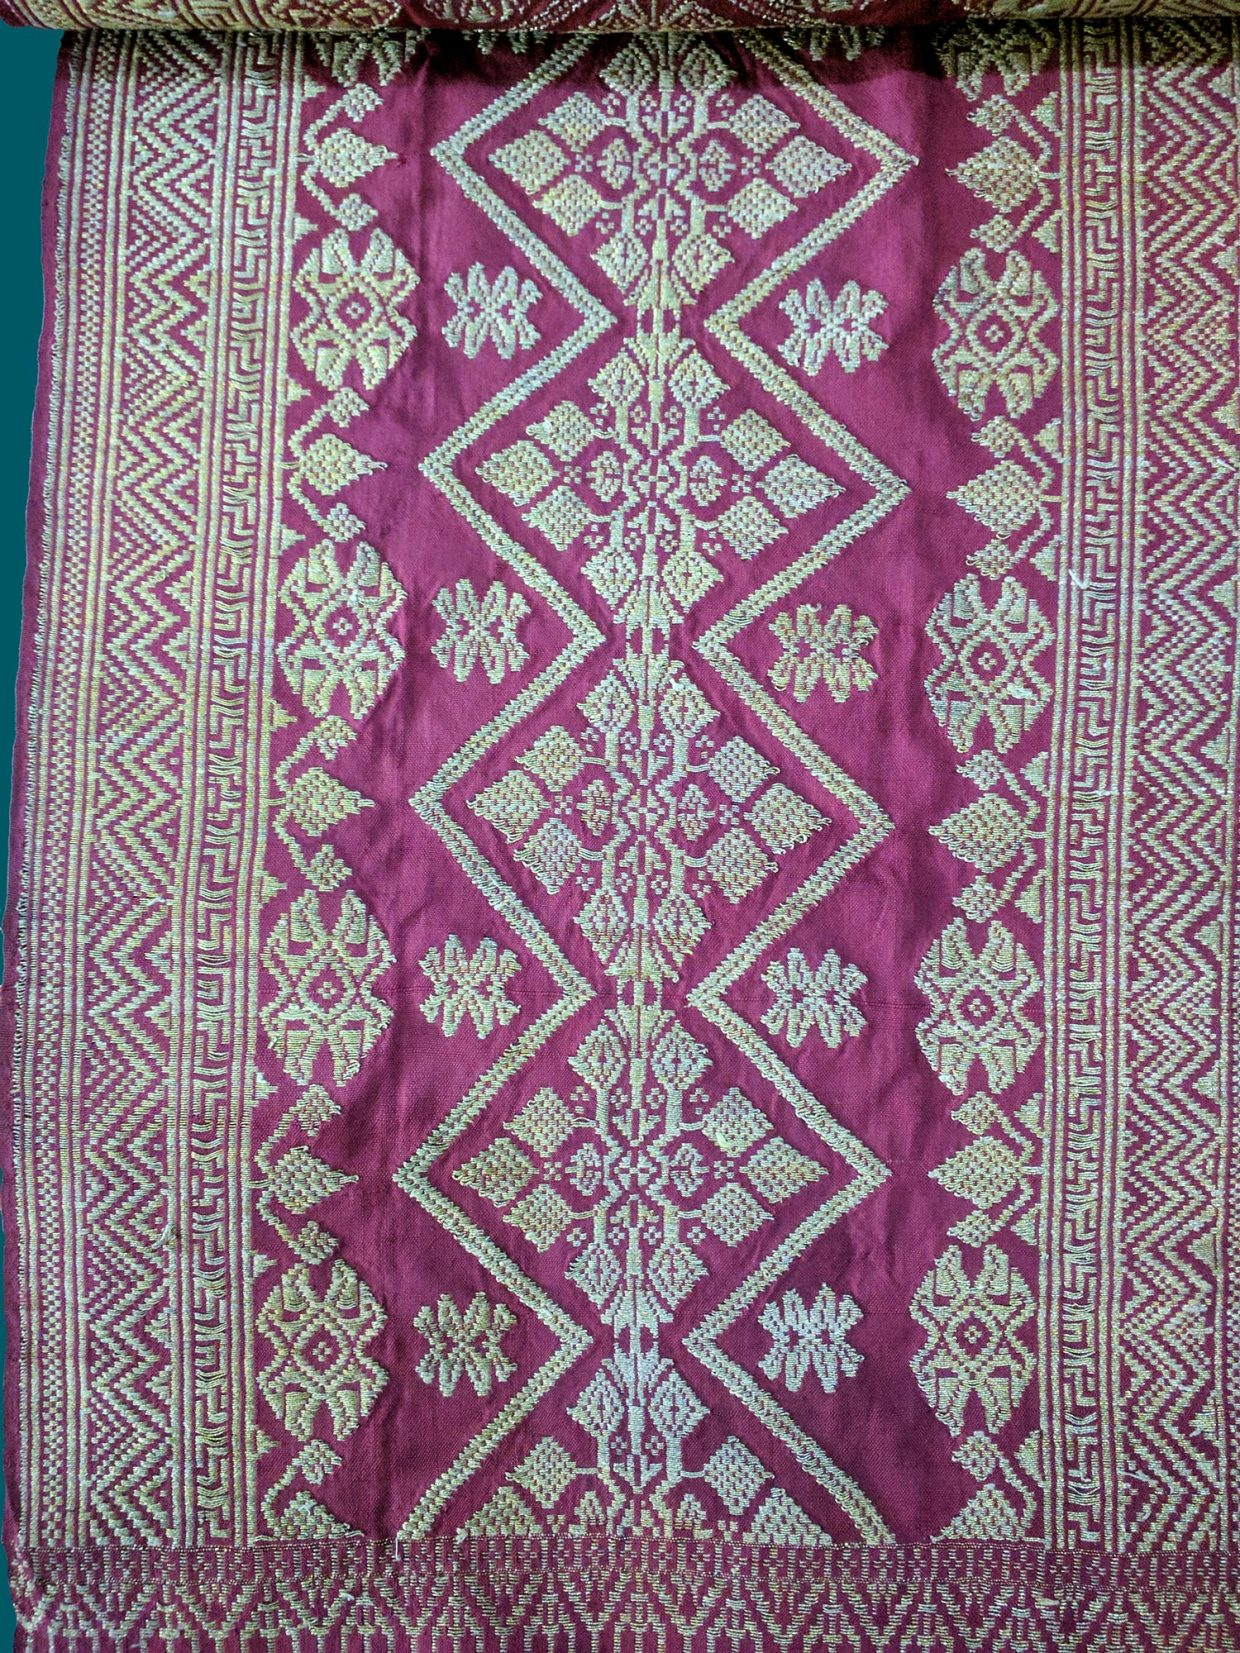 Antique Textile 4